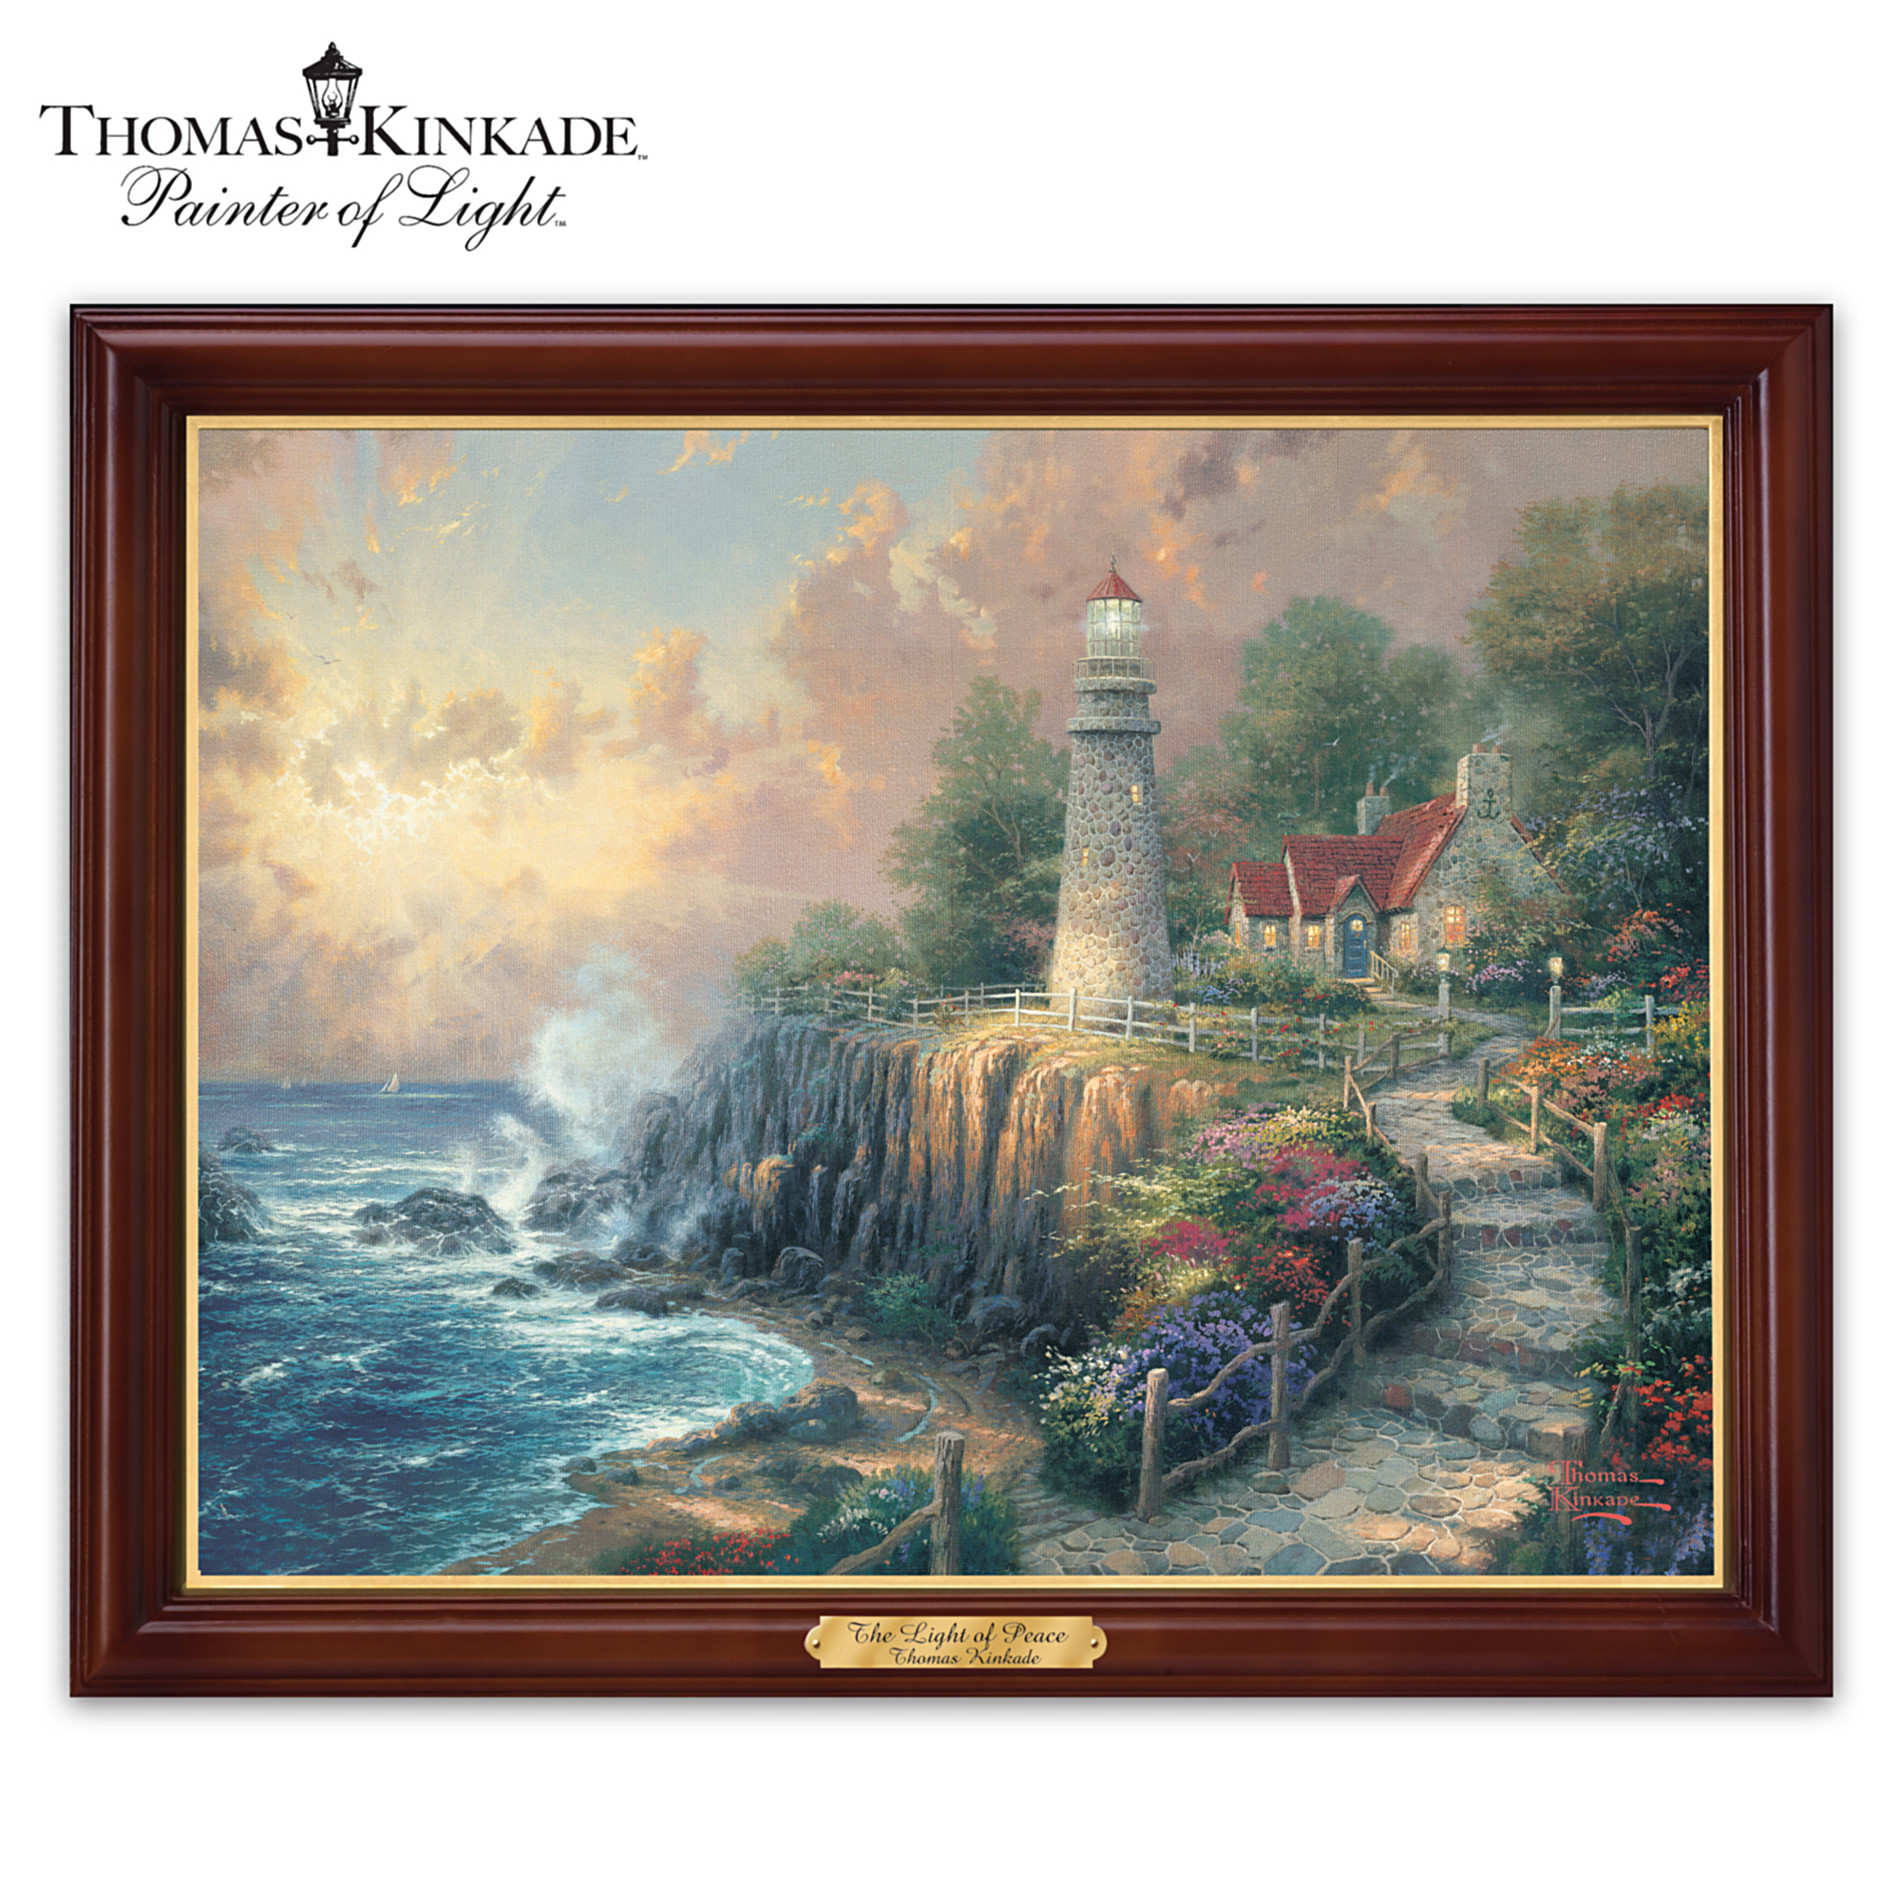 The Bradford Exchange Wall Decor: Thomas Kinkade The Light Of Peace Wall Decor at Sears.com